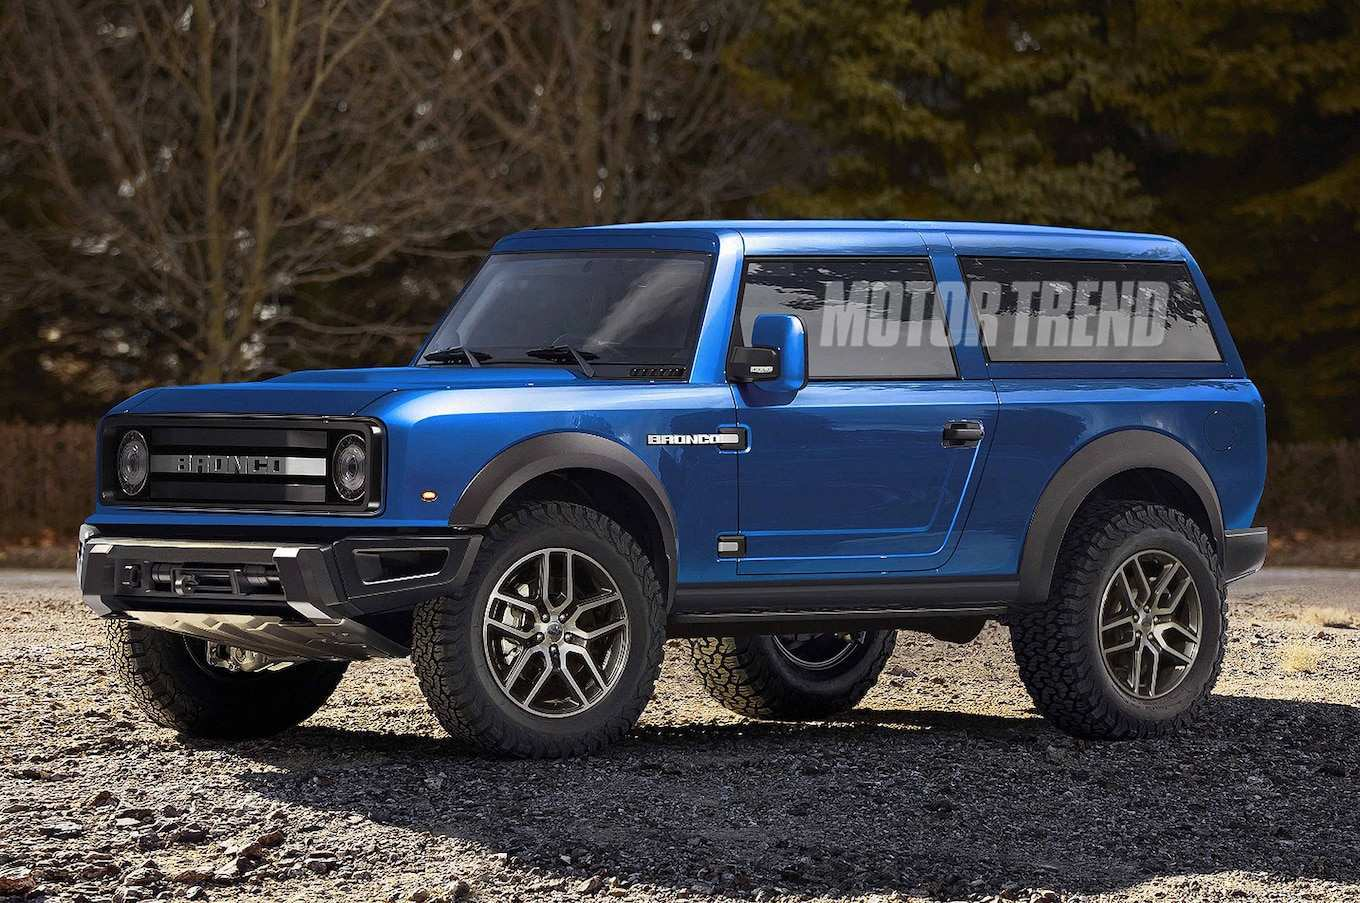 64 Gallery of Ford Baby Bronco 2020 Redesign and Concept for Ford Baby Bronco 2020